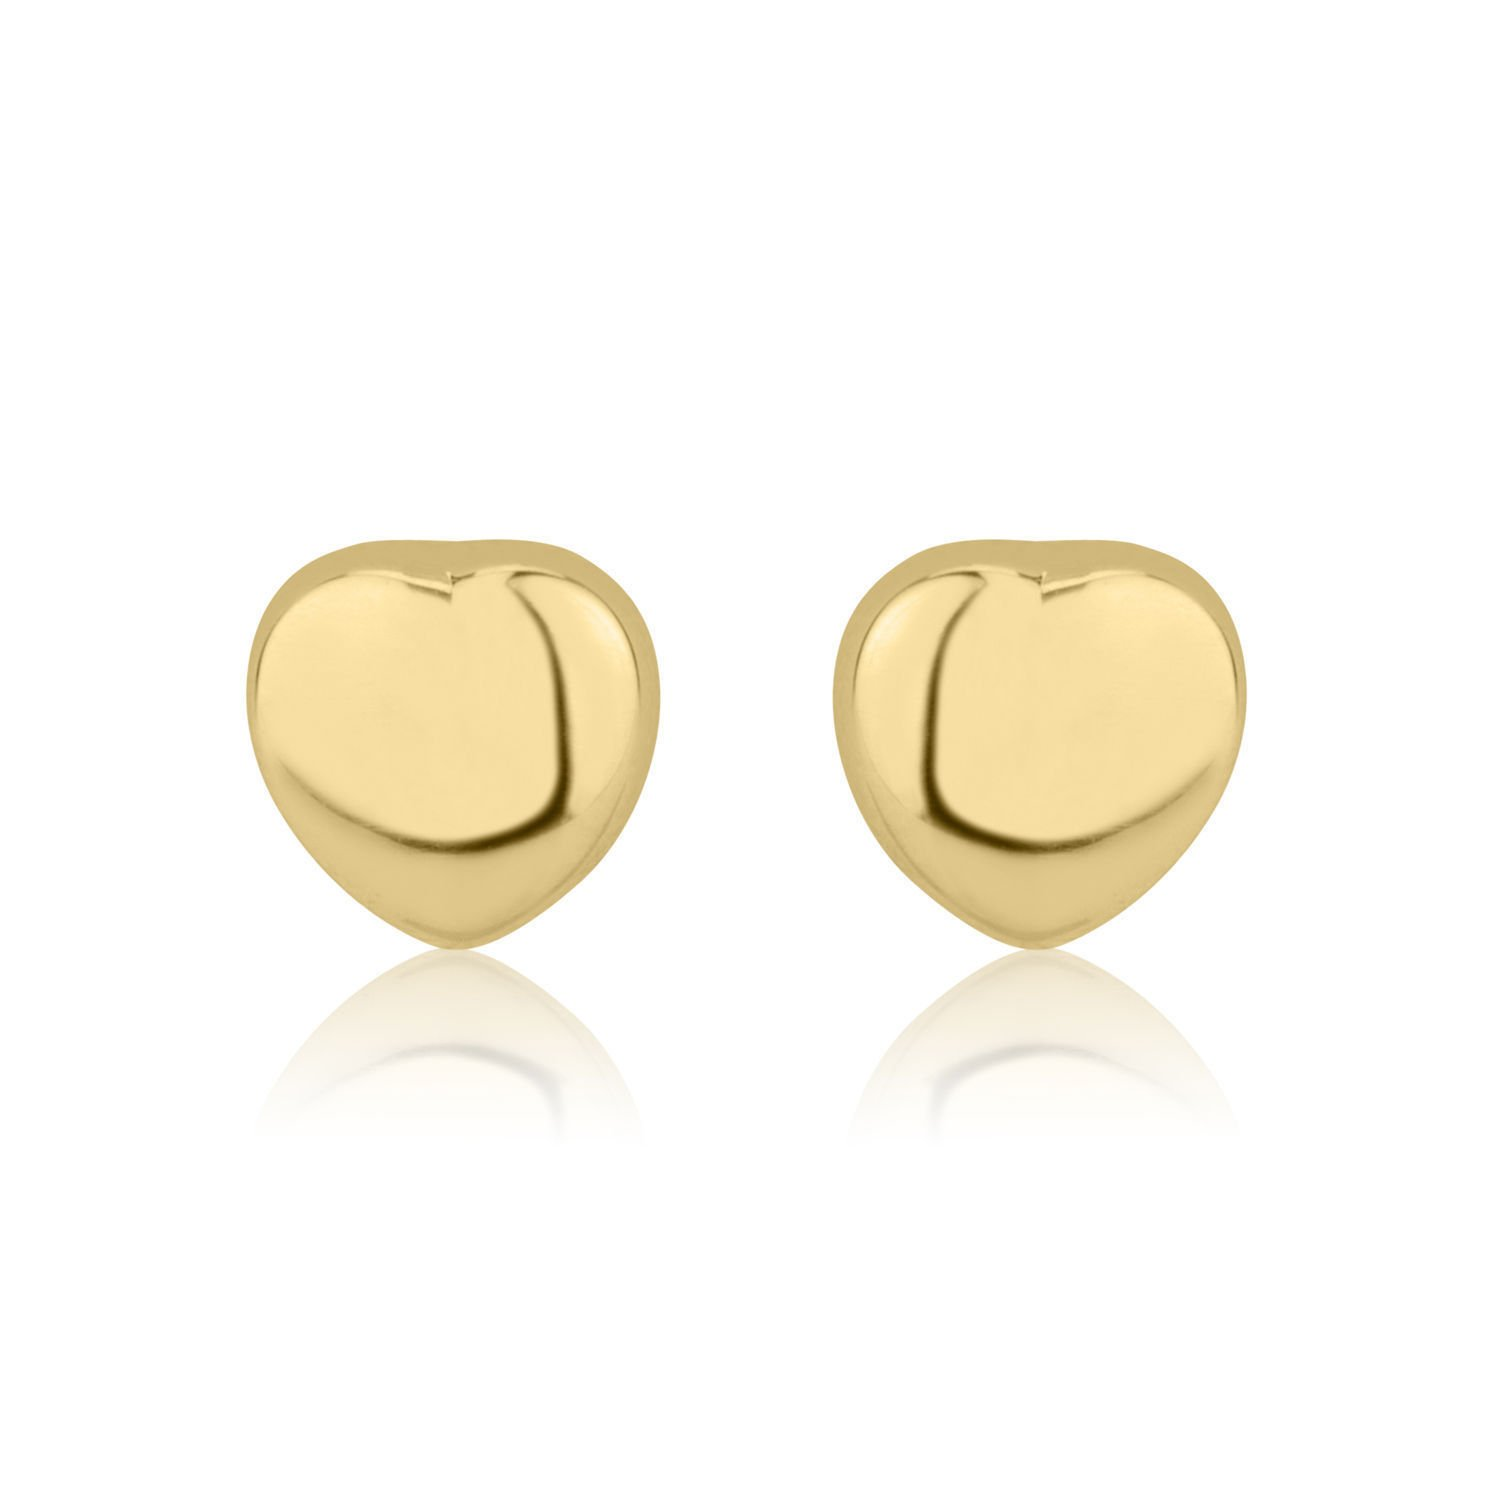 14K Fine Yellow Gold Heart Screw Back Stud Earrings for Girls Kids Children Gift by youme Gold Jewelry (Image #3)